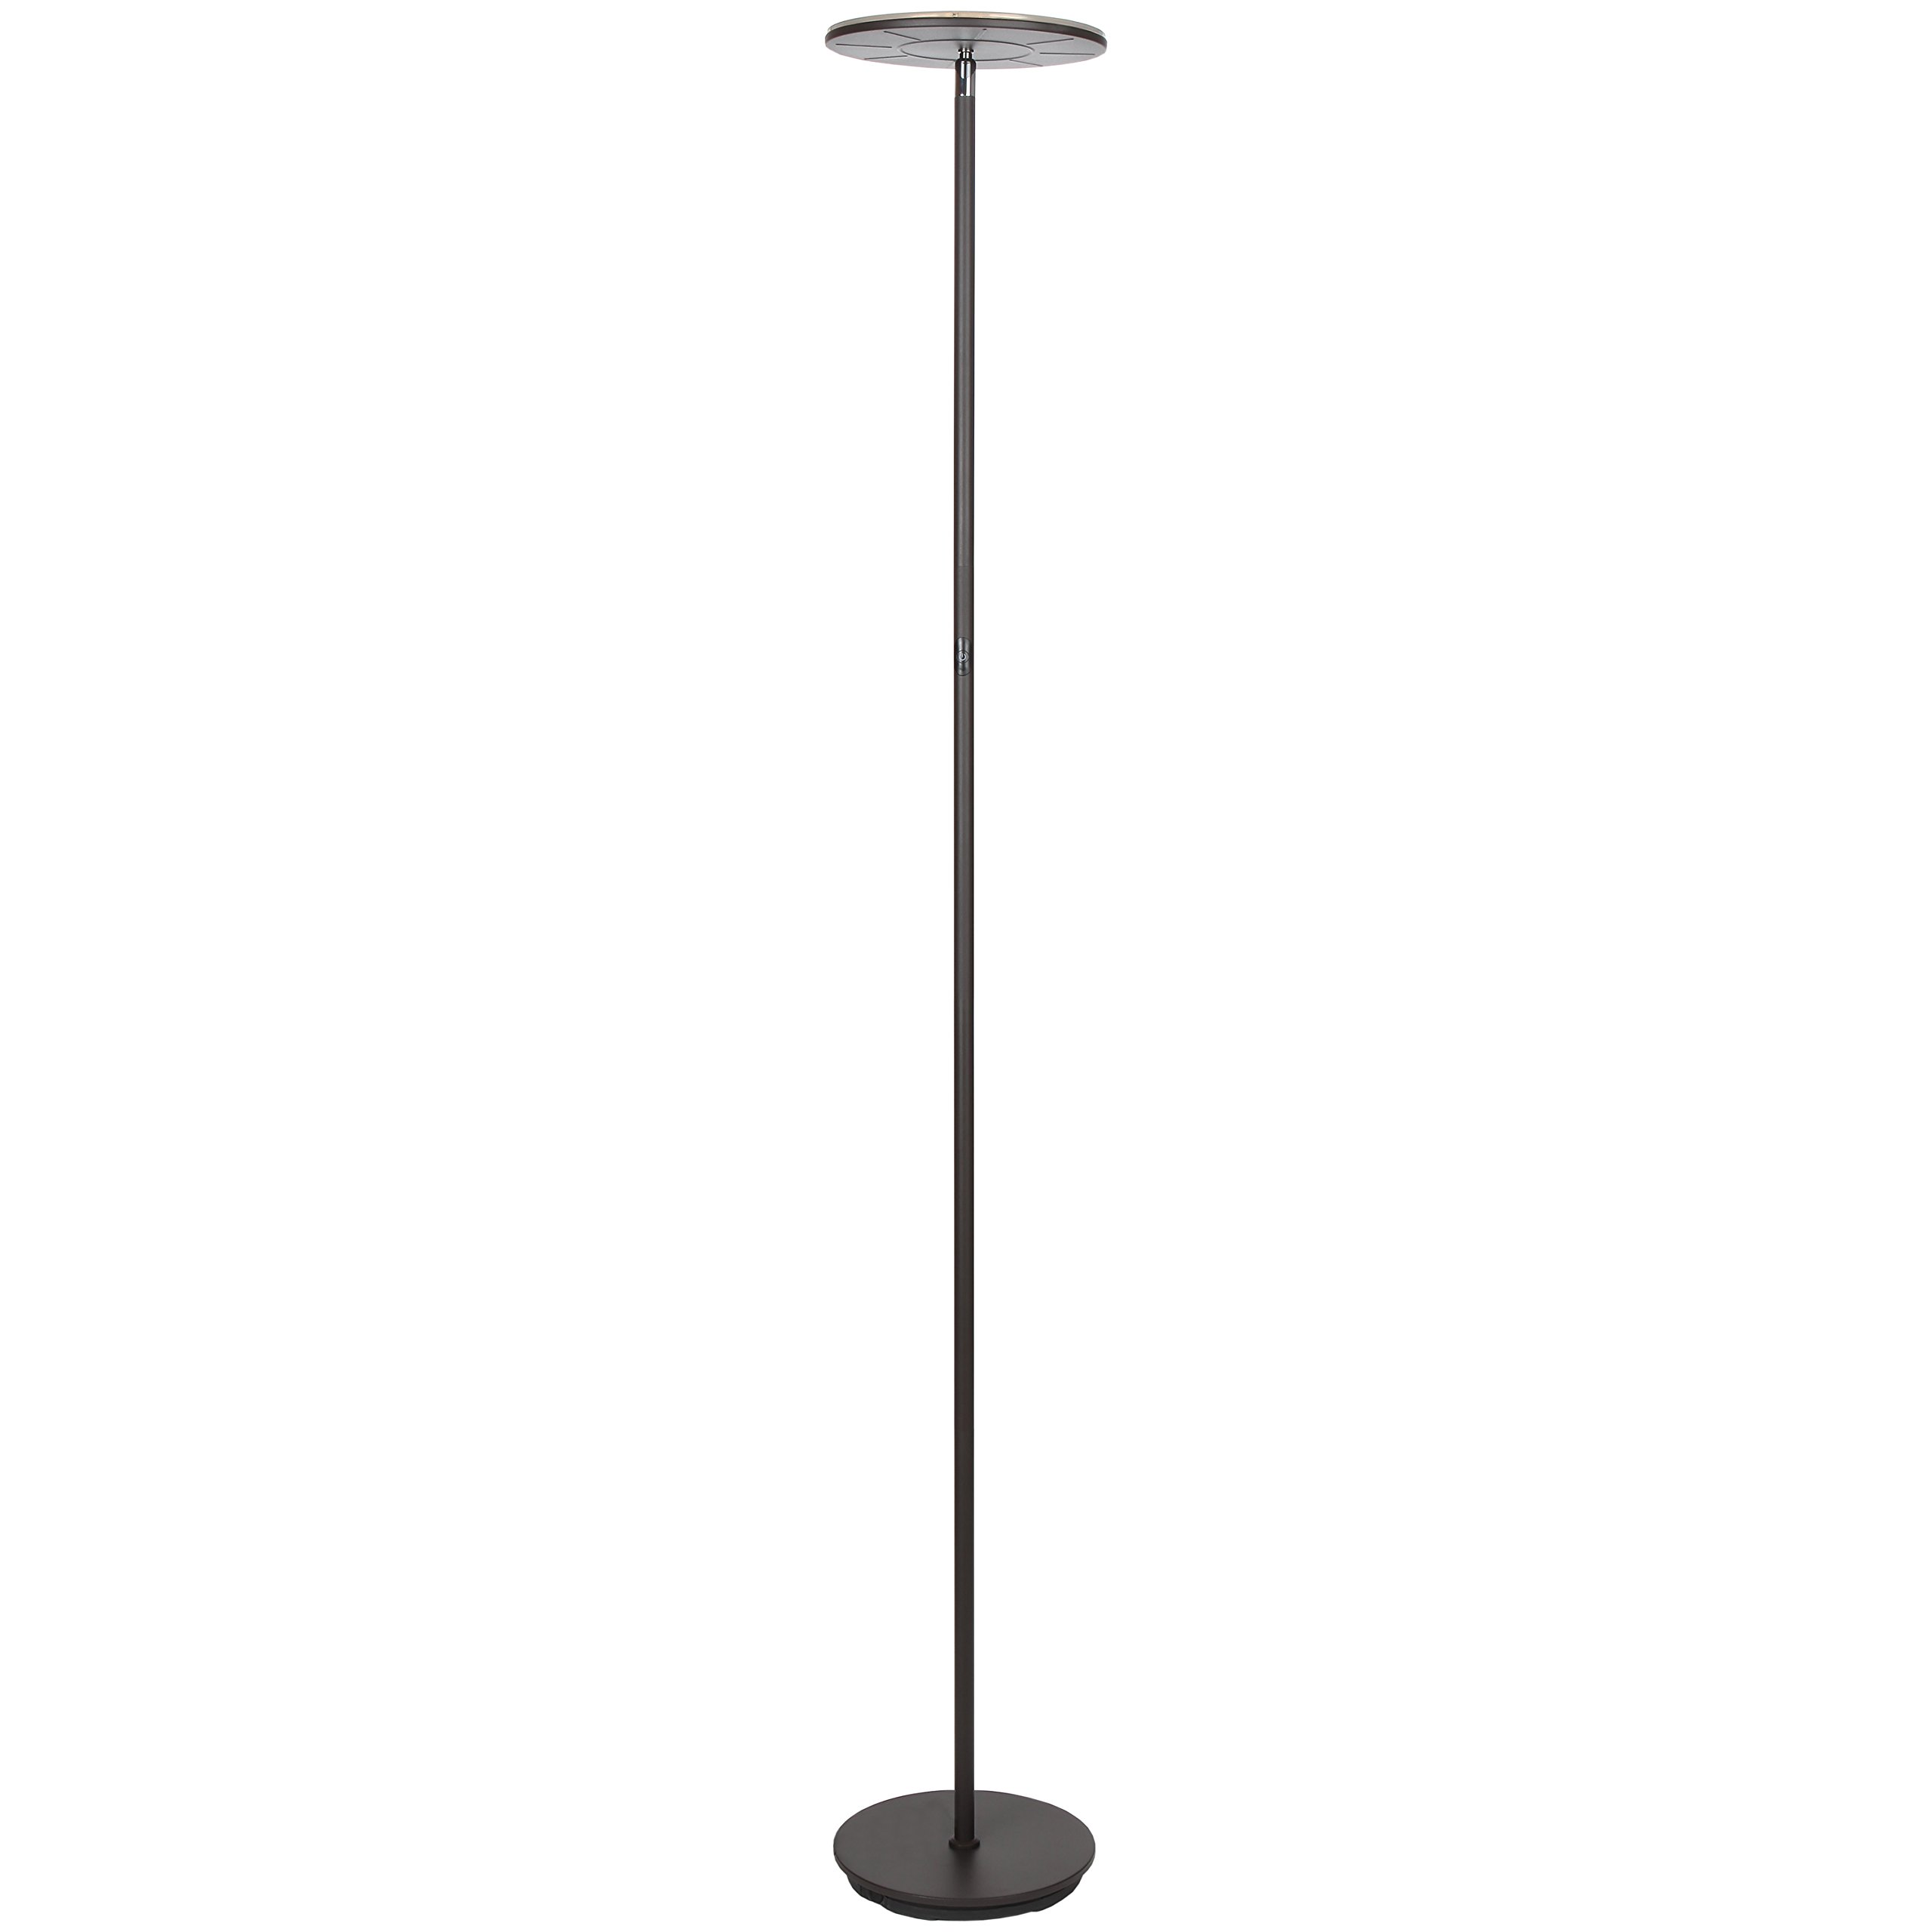 Brightech Sky LED Torchiere Super Bright Floor Lamp - Tall Standing Modern Pole Light for Living Rooms & Offices - Dimmable Uplight for Reading Books in Your Bedroom etc - Dark Bronze by Brightech (Image #1)